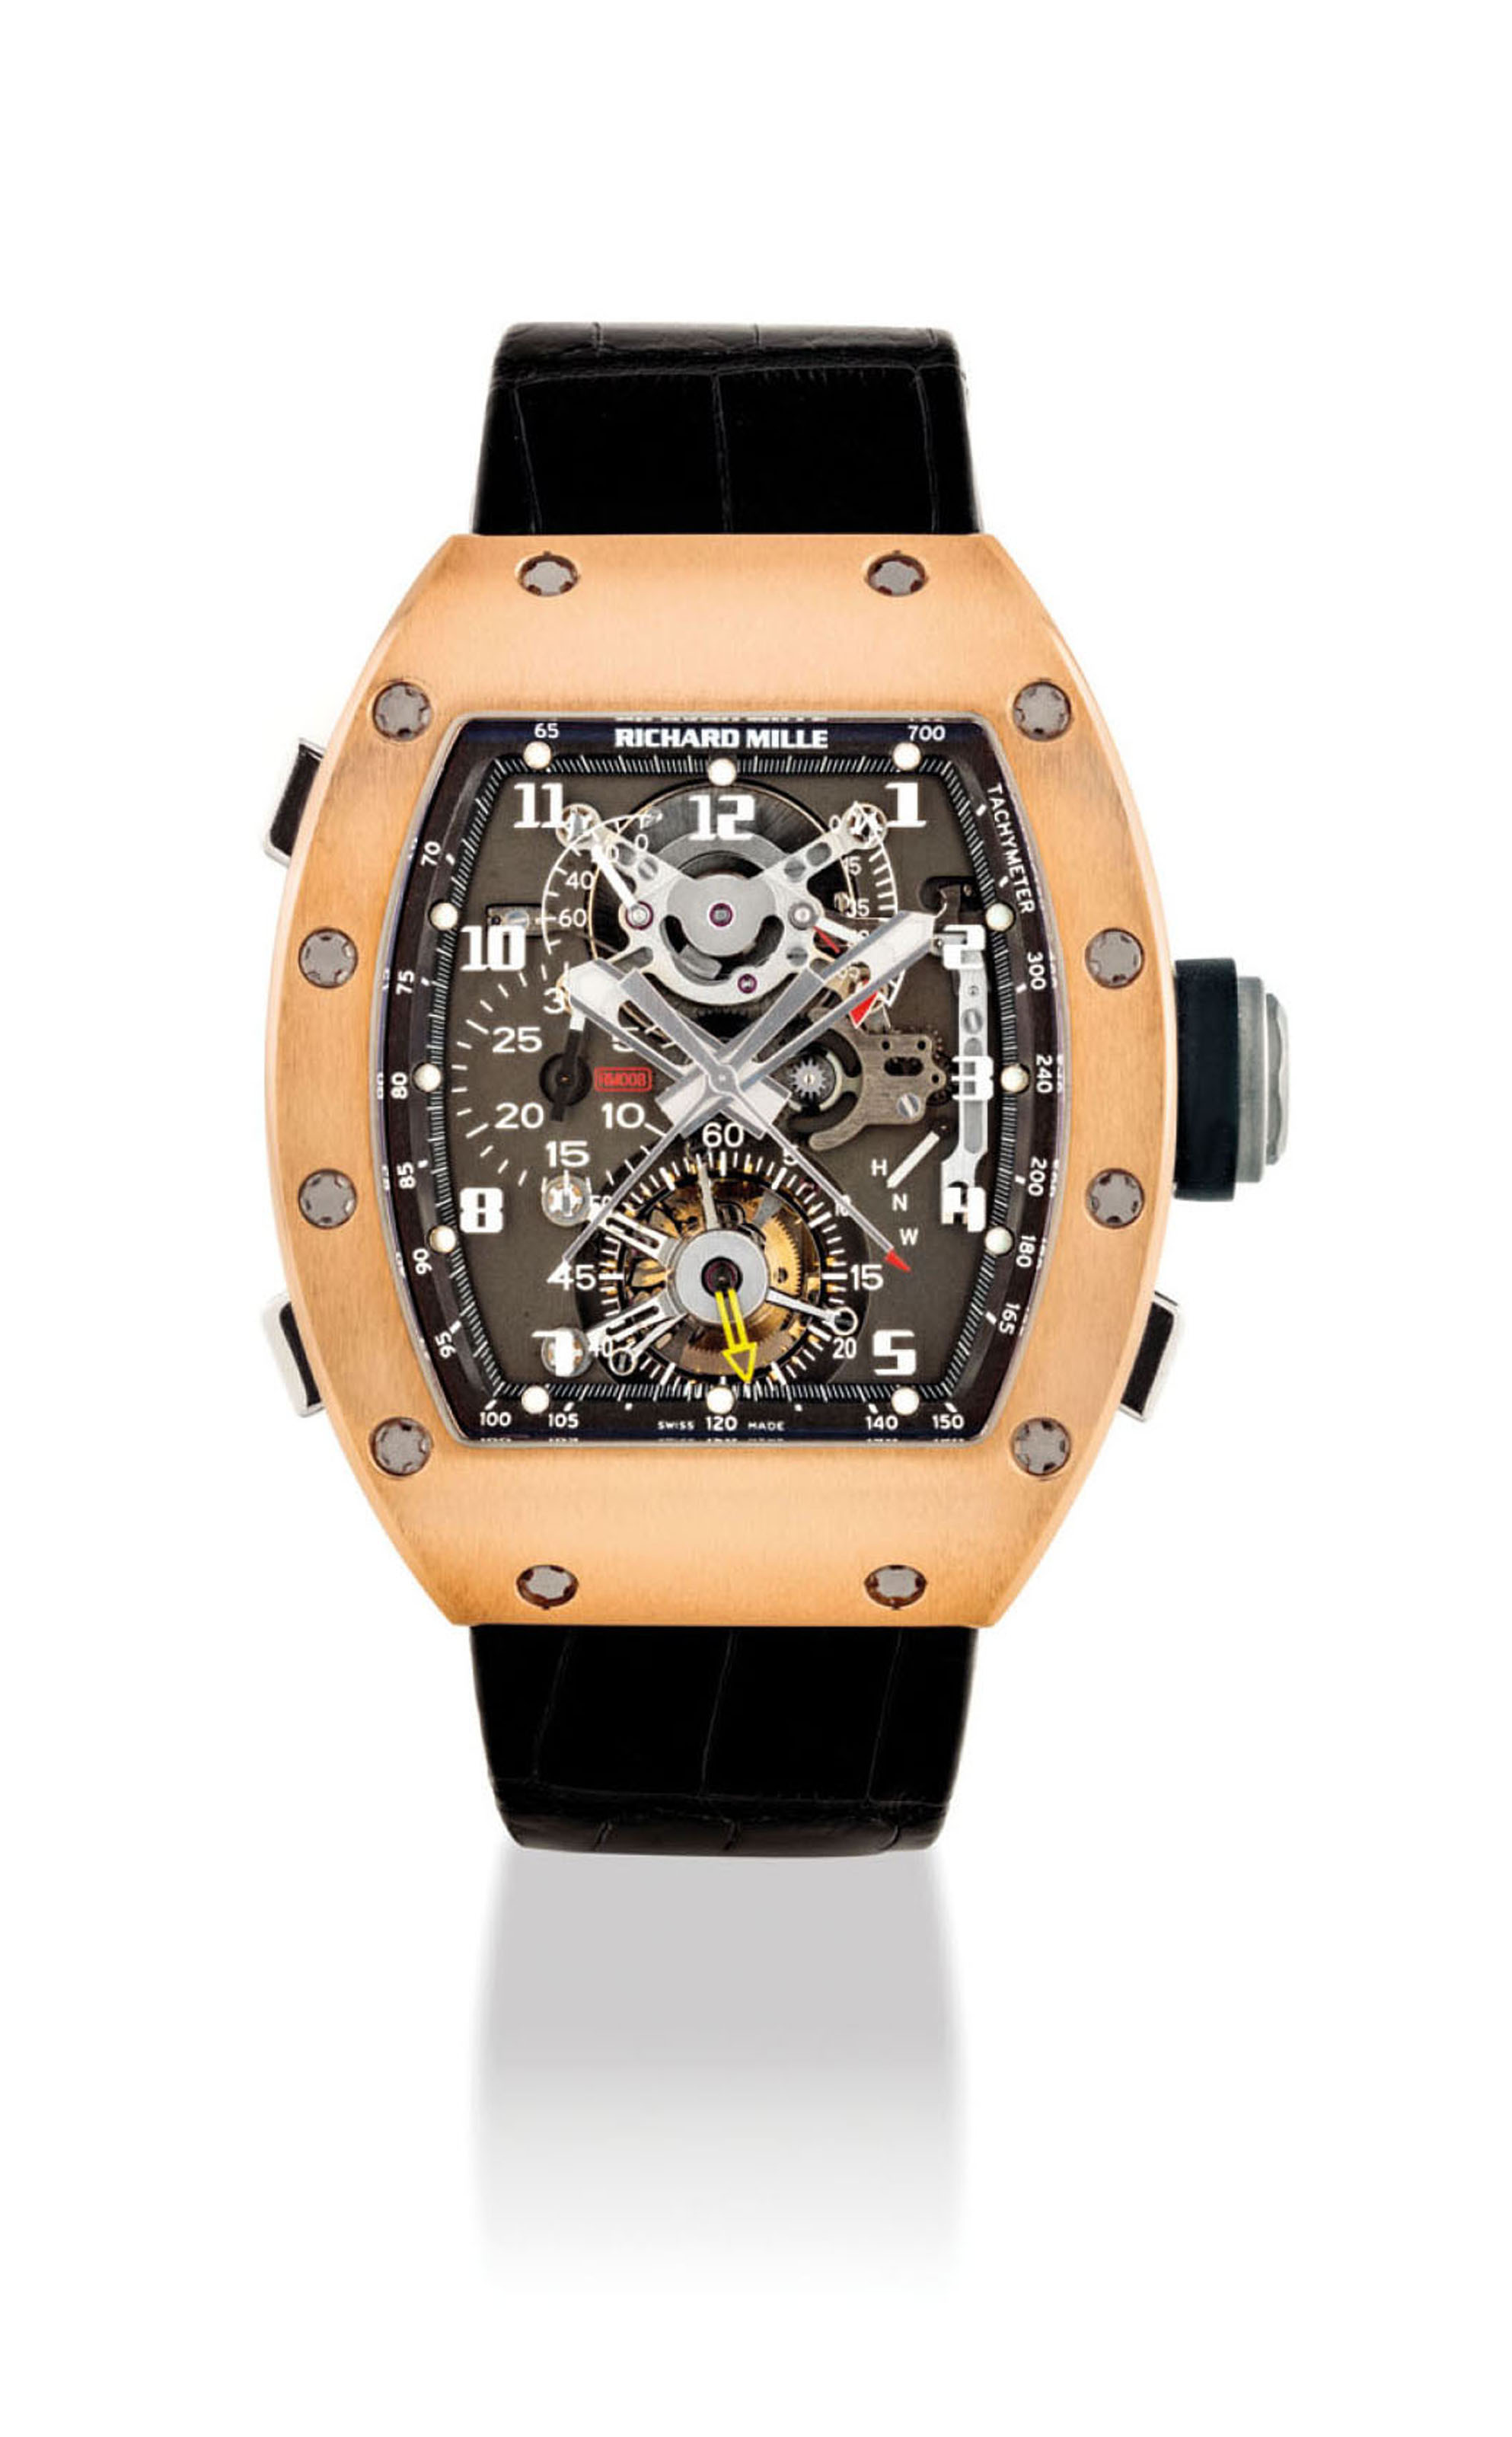 RICHARD MILLE. A VERY FINE AND RARE 18K PINK GOLD TONNEAU-SHAPED TOURBILLON SPLIT SECONDS CHRONOGRAPH WRISTWATCH WITH POWER RESERVE AND TORQUE INDICATION